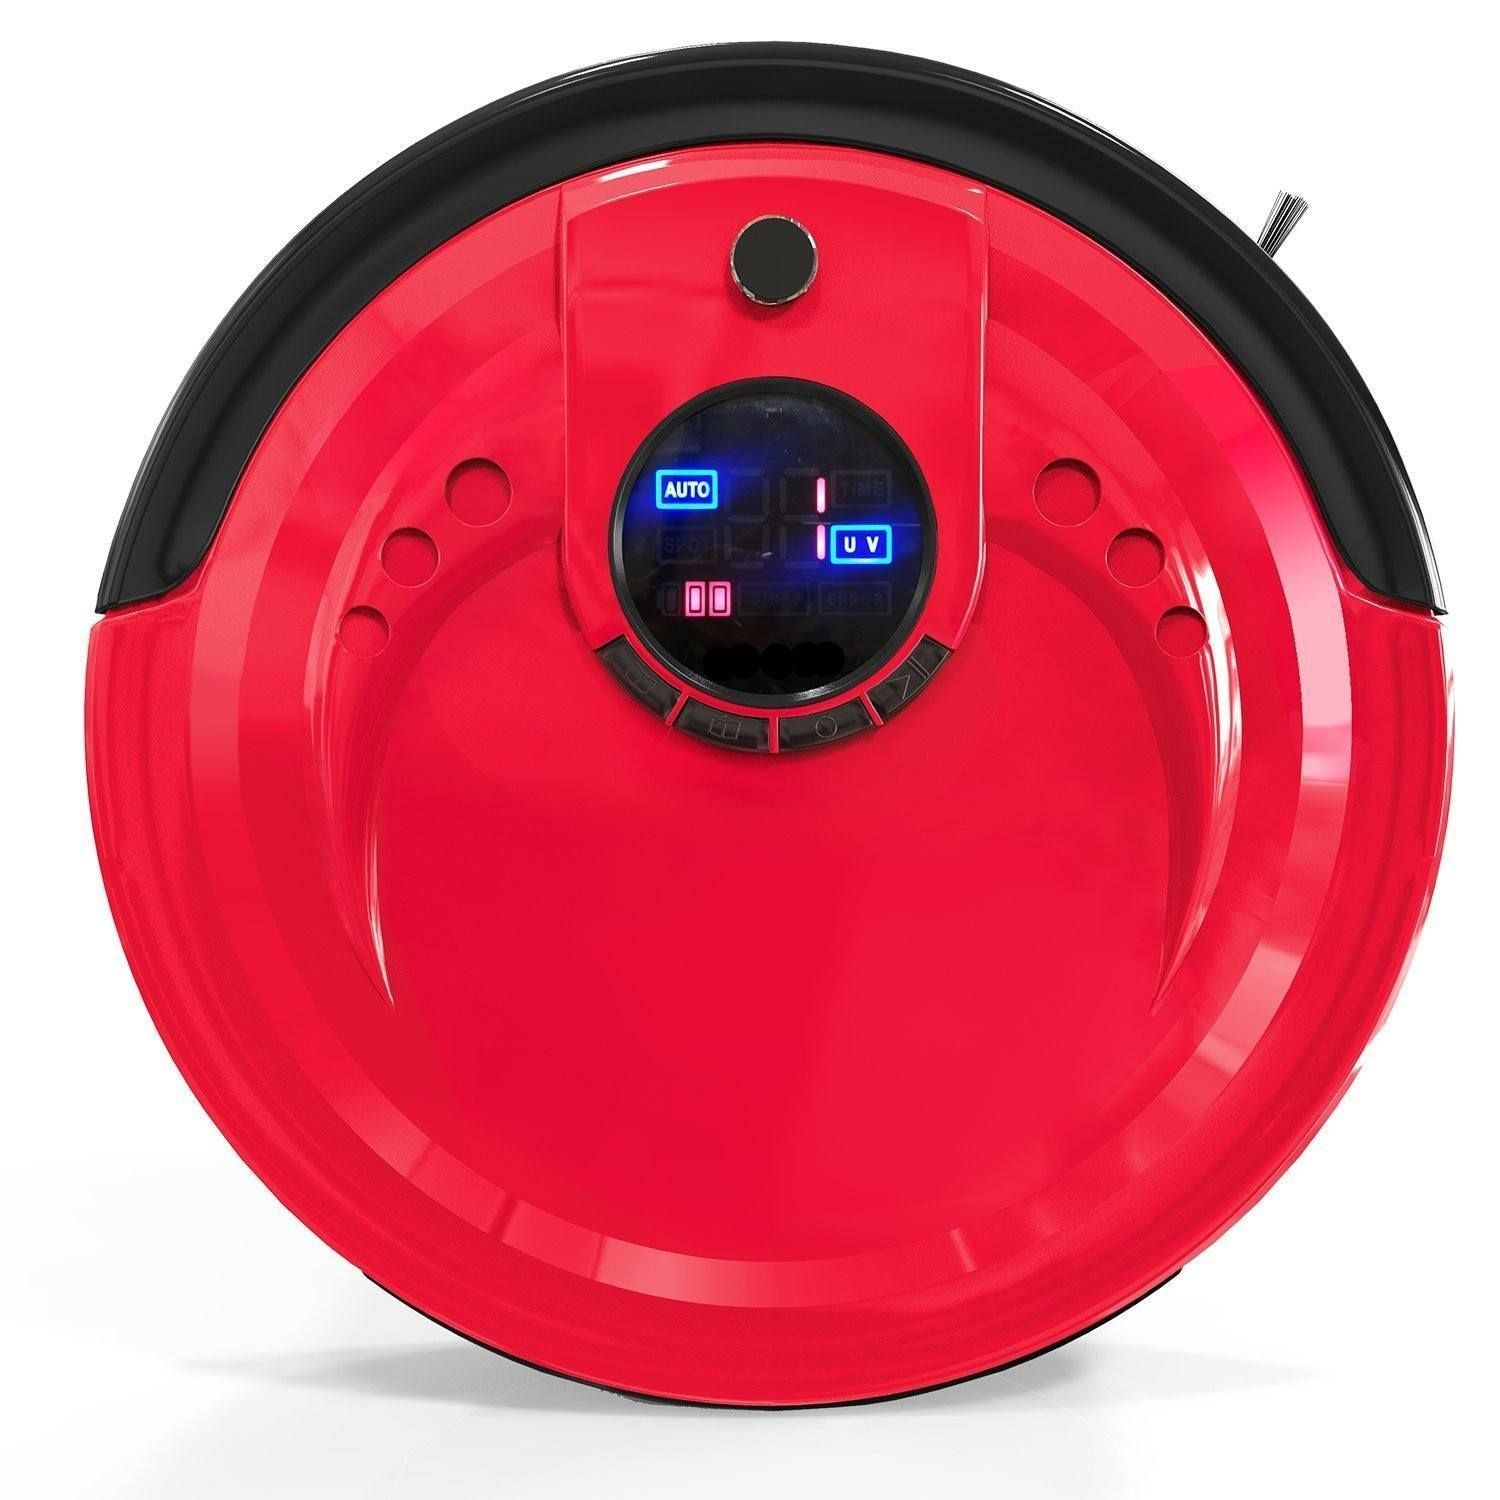 bObsweep Standard Robot Vacuum Cleaner and Mop Rouge